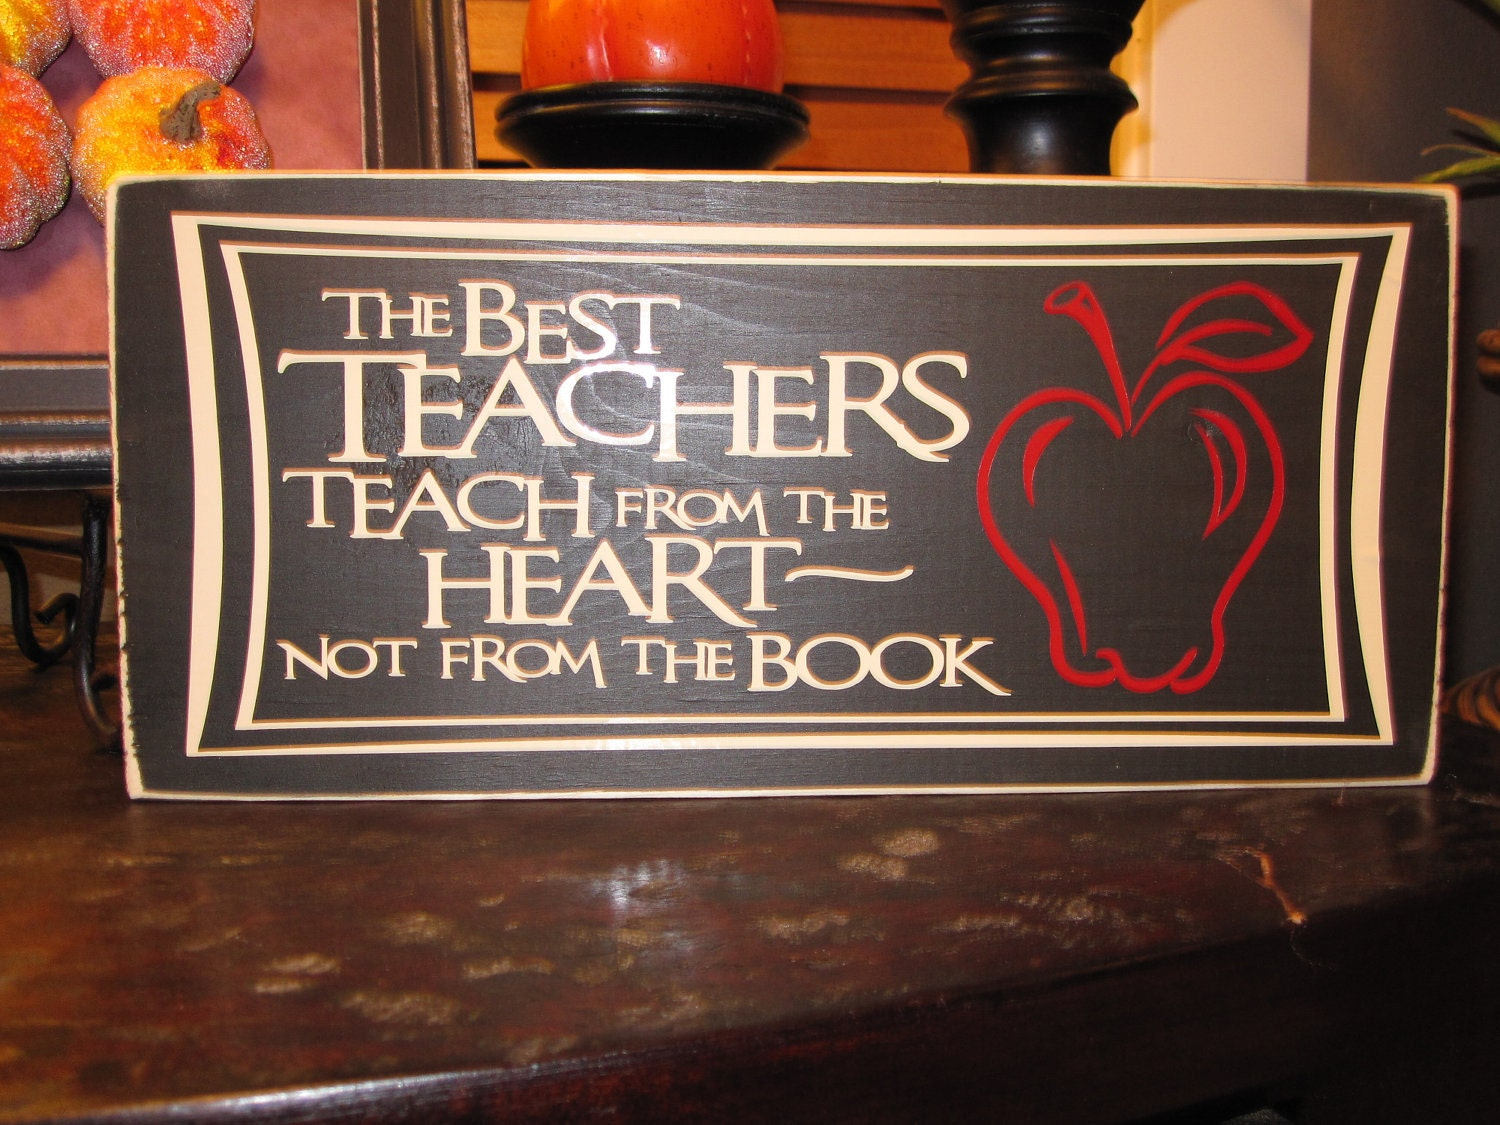 Teacher, Teacher Appreciation, The best teachers teach from the heart not from the book, wood sign - Style TA1